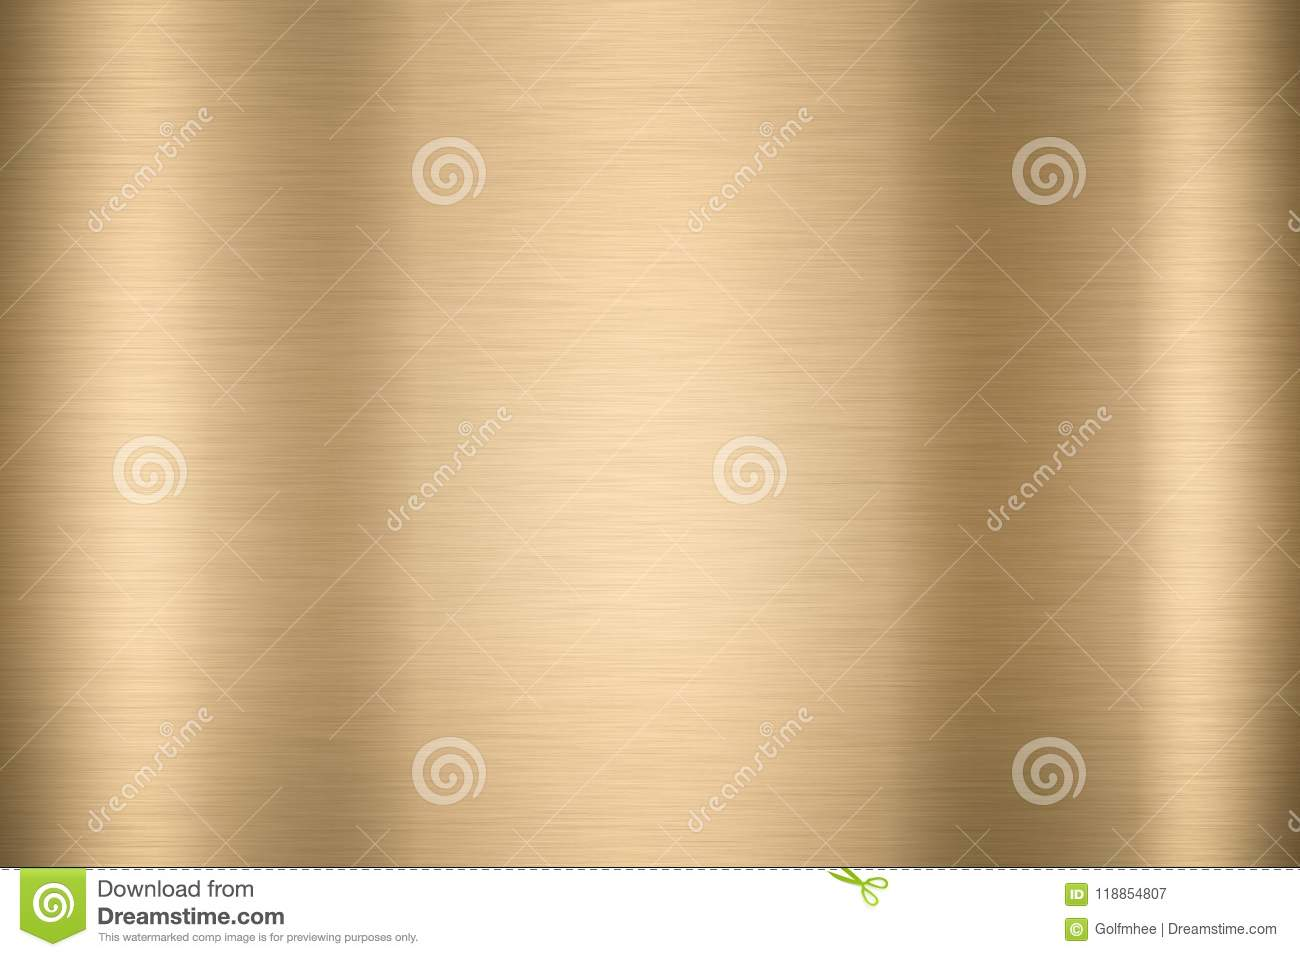 Abstract Shiny smooth foil metal Gold color background Bright vi